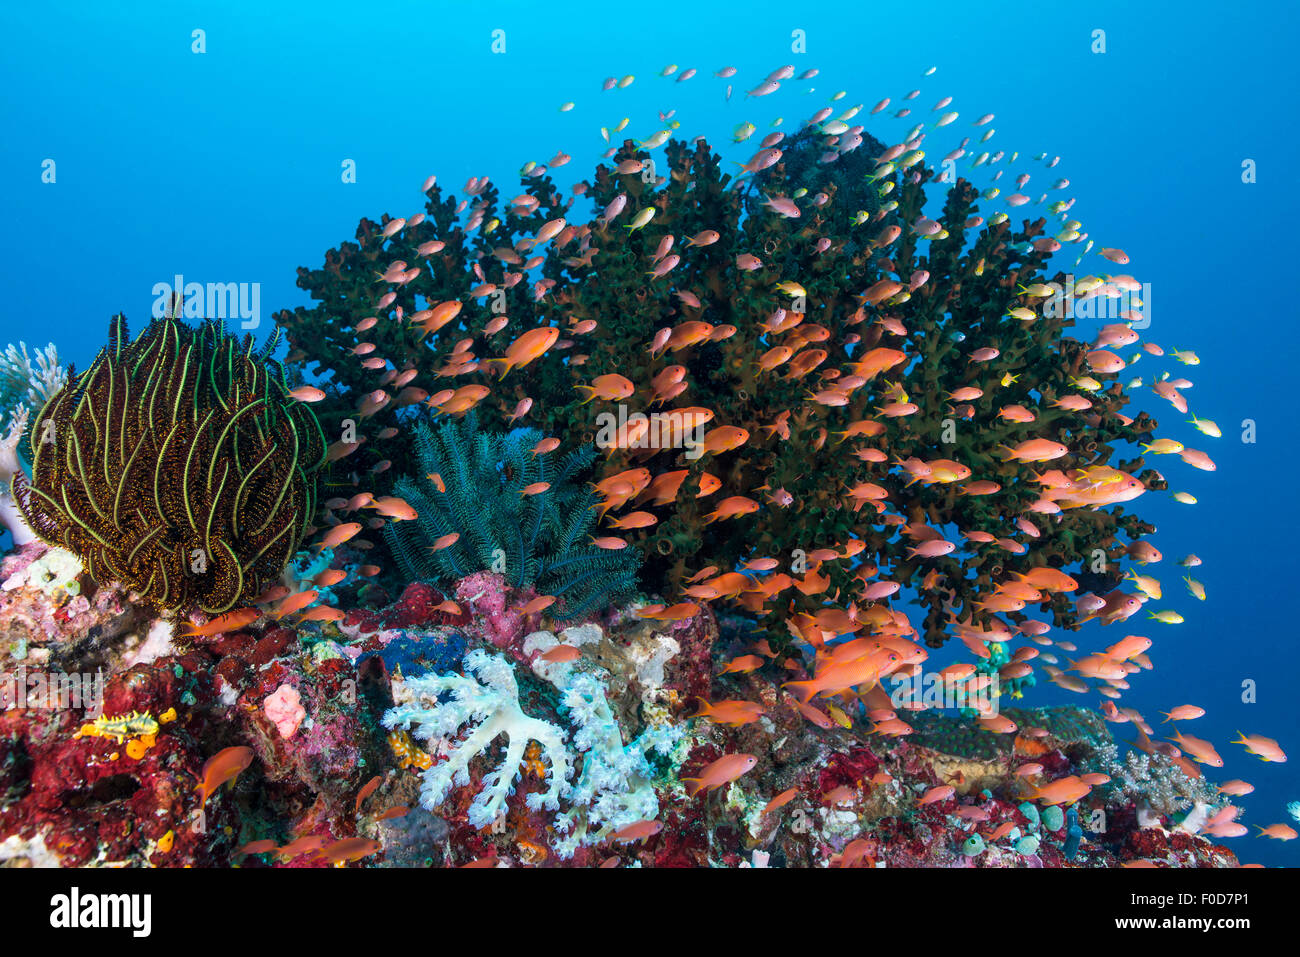 Deanse school of orange, pink and yellow anthias radiating from a colorful reef with green hard coral and yellow Stock Photo